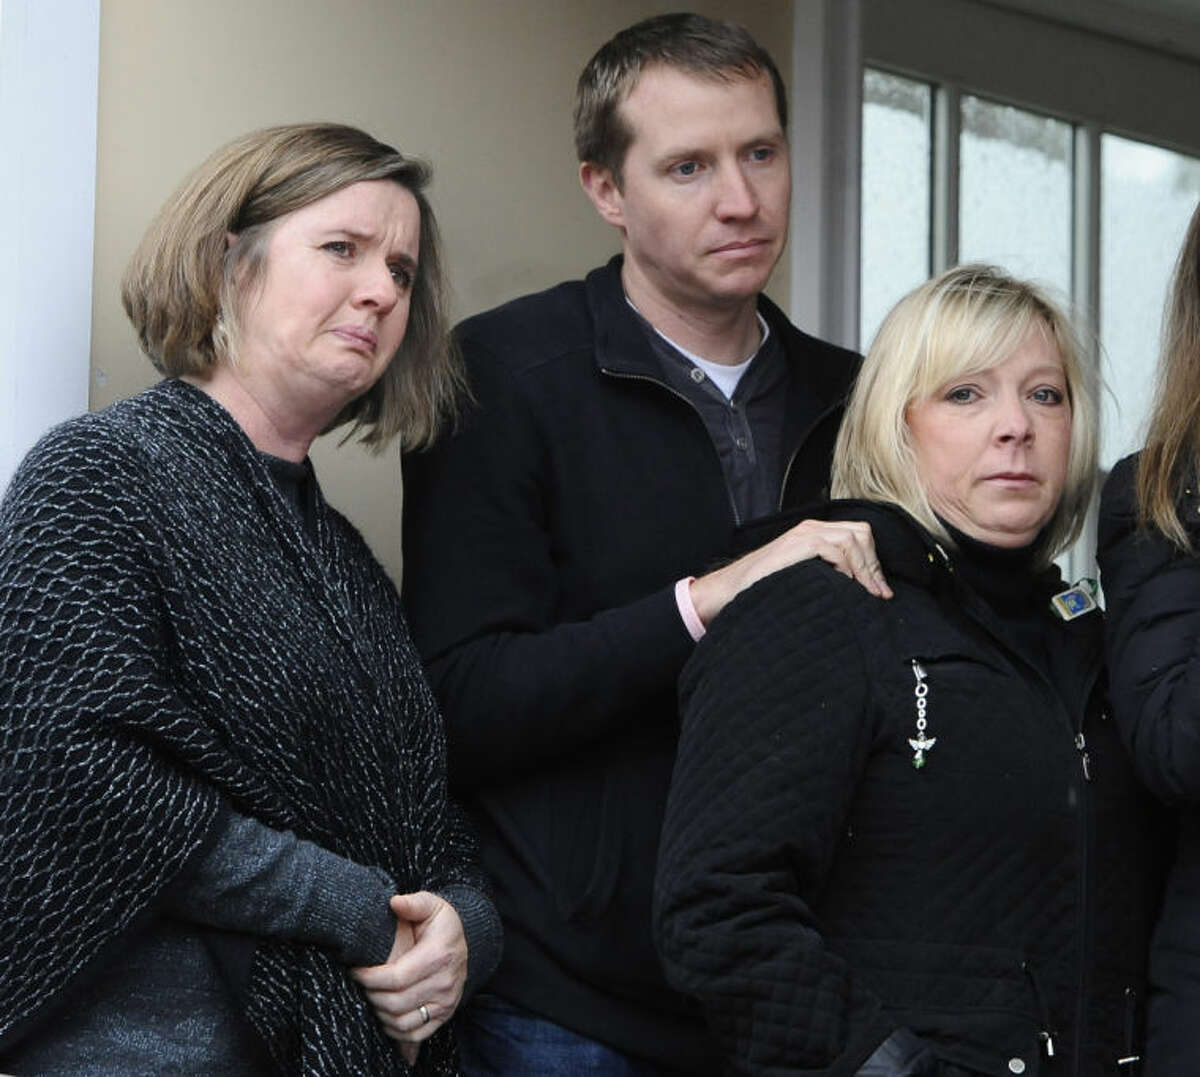 Jackie Barden, mother of Sandy Hook School shooting victim Daniel Barden, Robbie Parker, father of victim Emilie Parker, and Joy Rousseau, relative of victim Lauren Rousseau, stand with other family members as they address the media, Monday, Dec. 9, 2013, in Newtown, Conn. Newtown is not hosting formal events to mark the anniversary Saturday. (AP Photo/Jessica Hill)